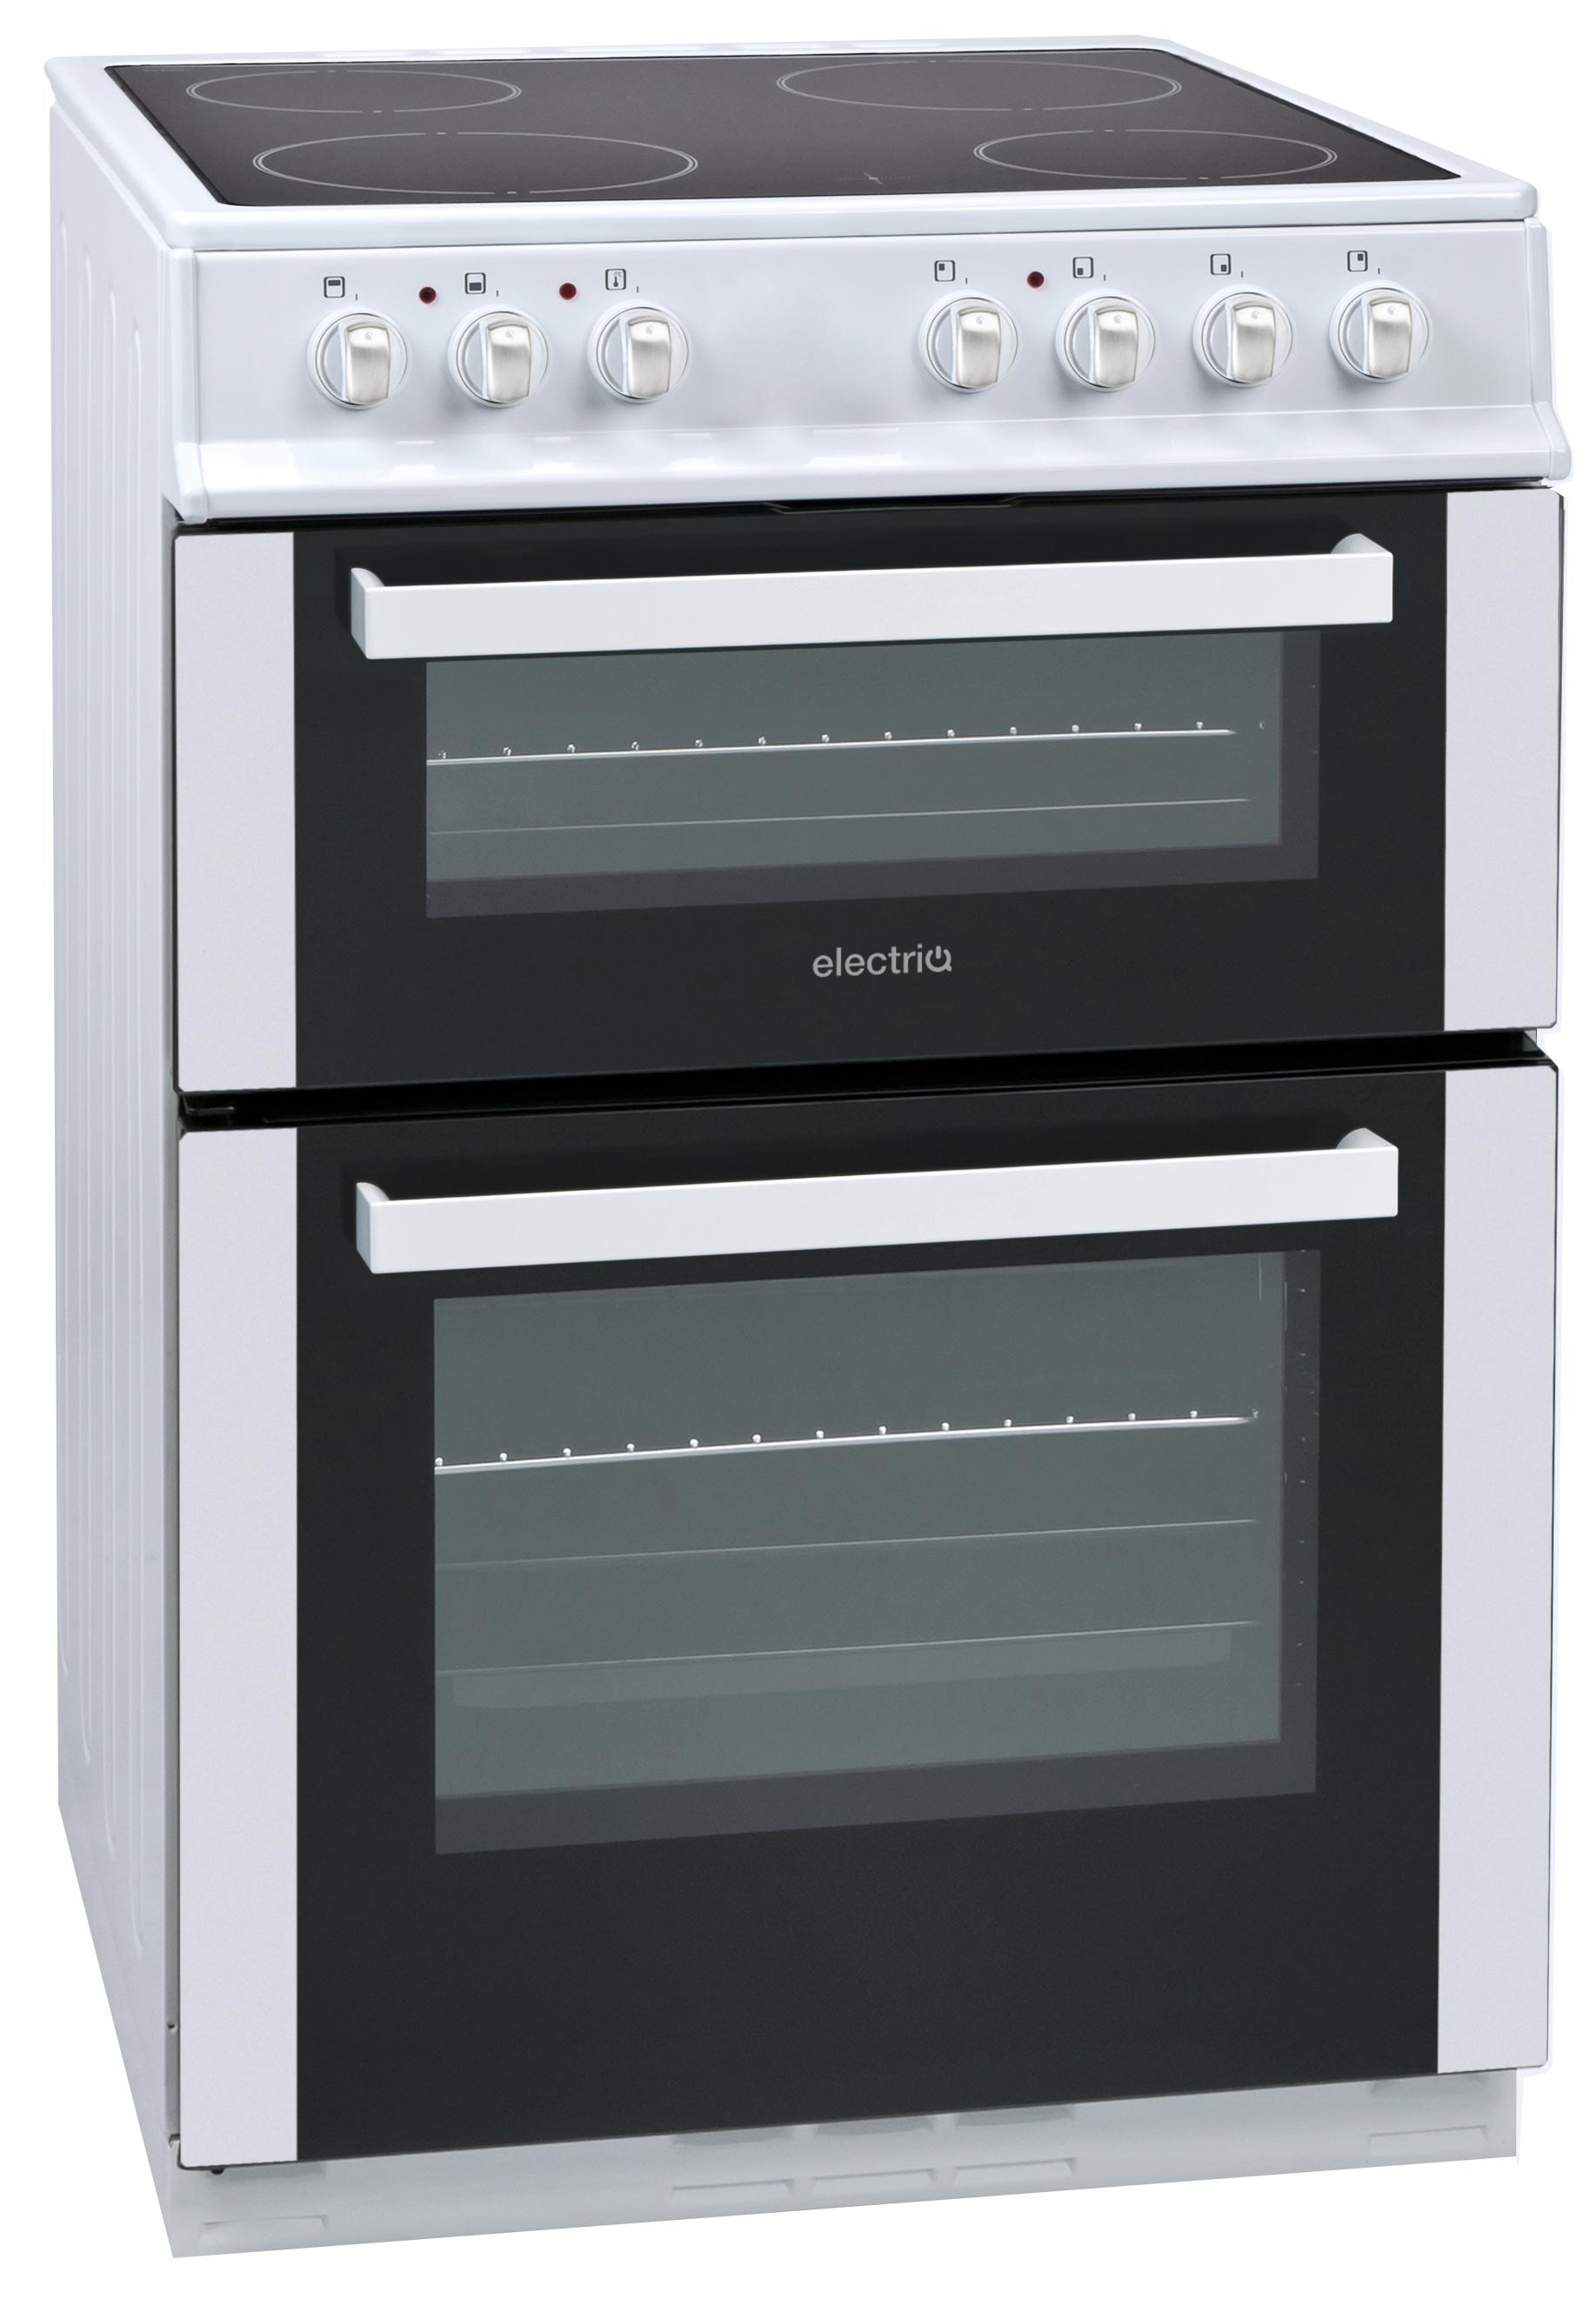 EQEC4W60 white freestanding cooker